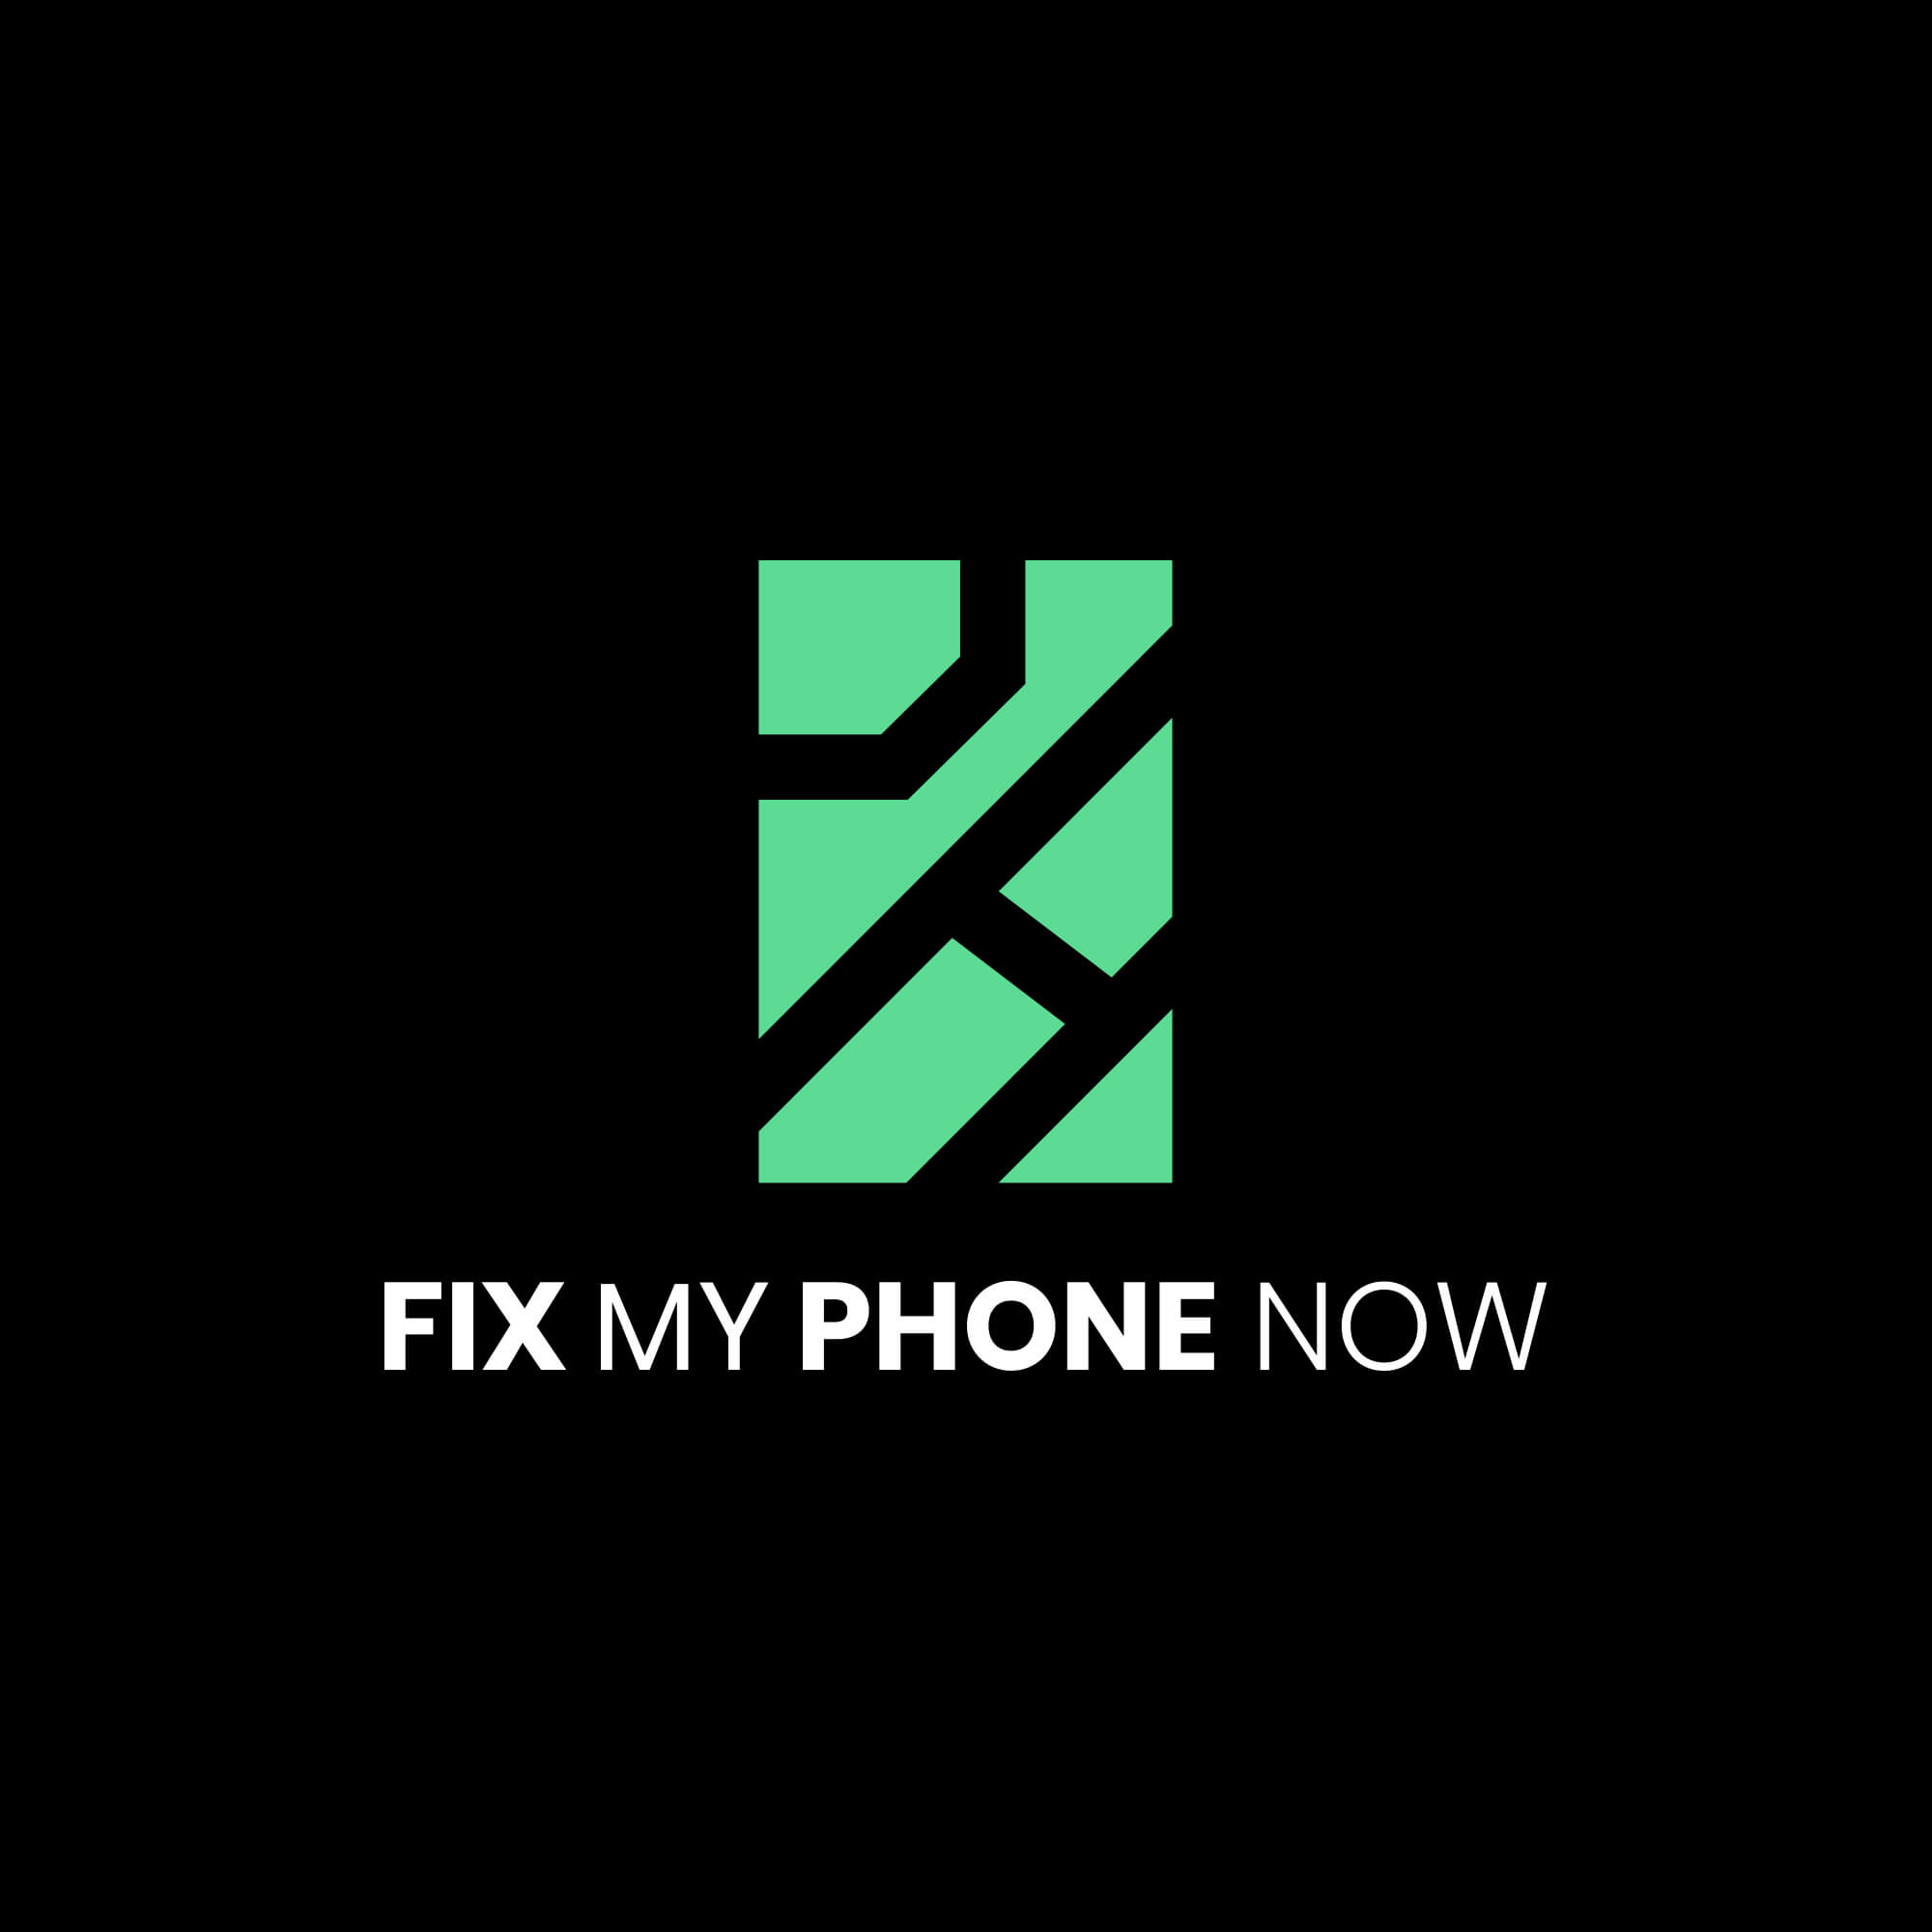 Fix My Phone Now, Now Has Over 20 Locations Becoming Melbourne's Biggest Phone Repair Business